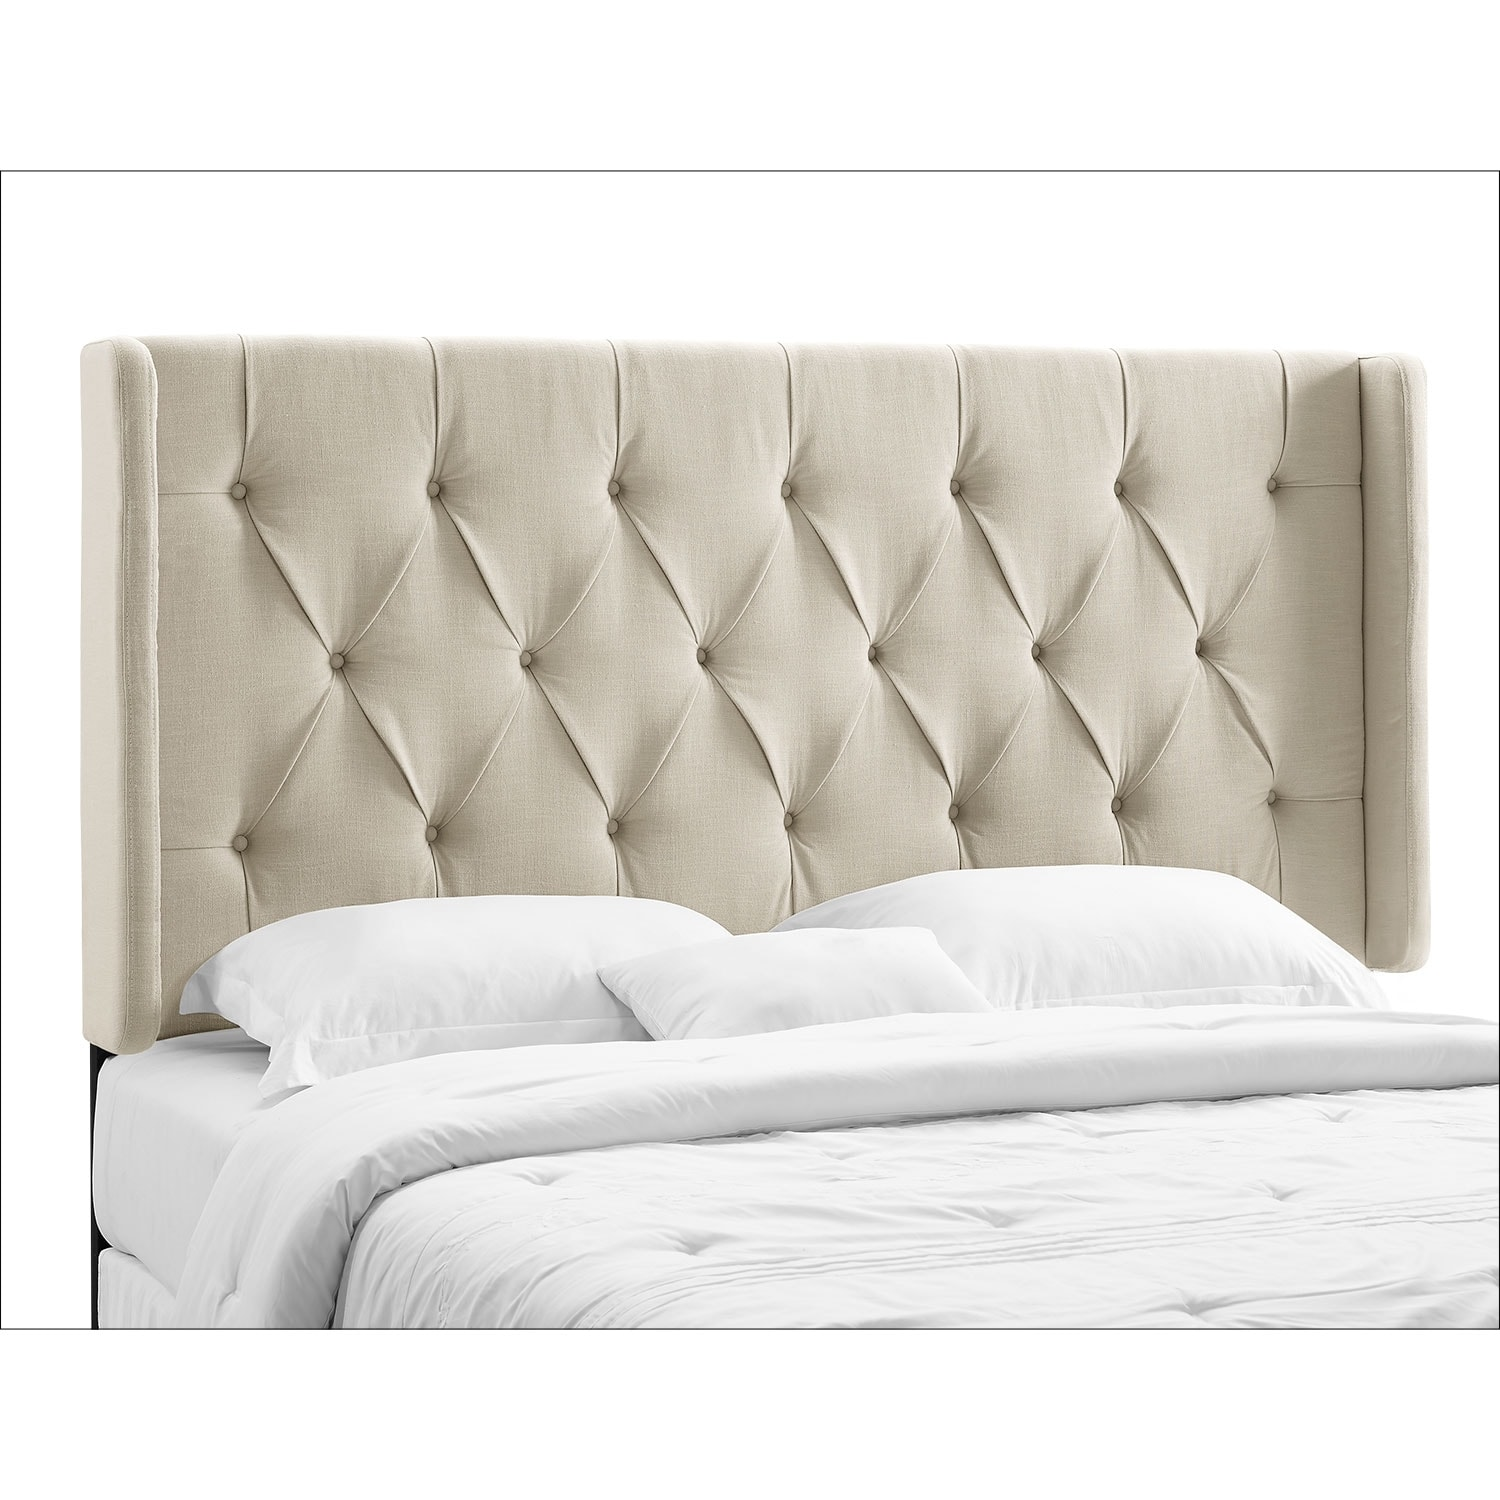 Winston cream king california king headboard value city for California king headboard